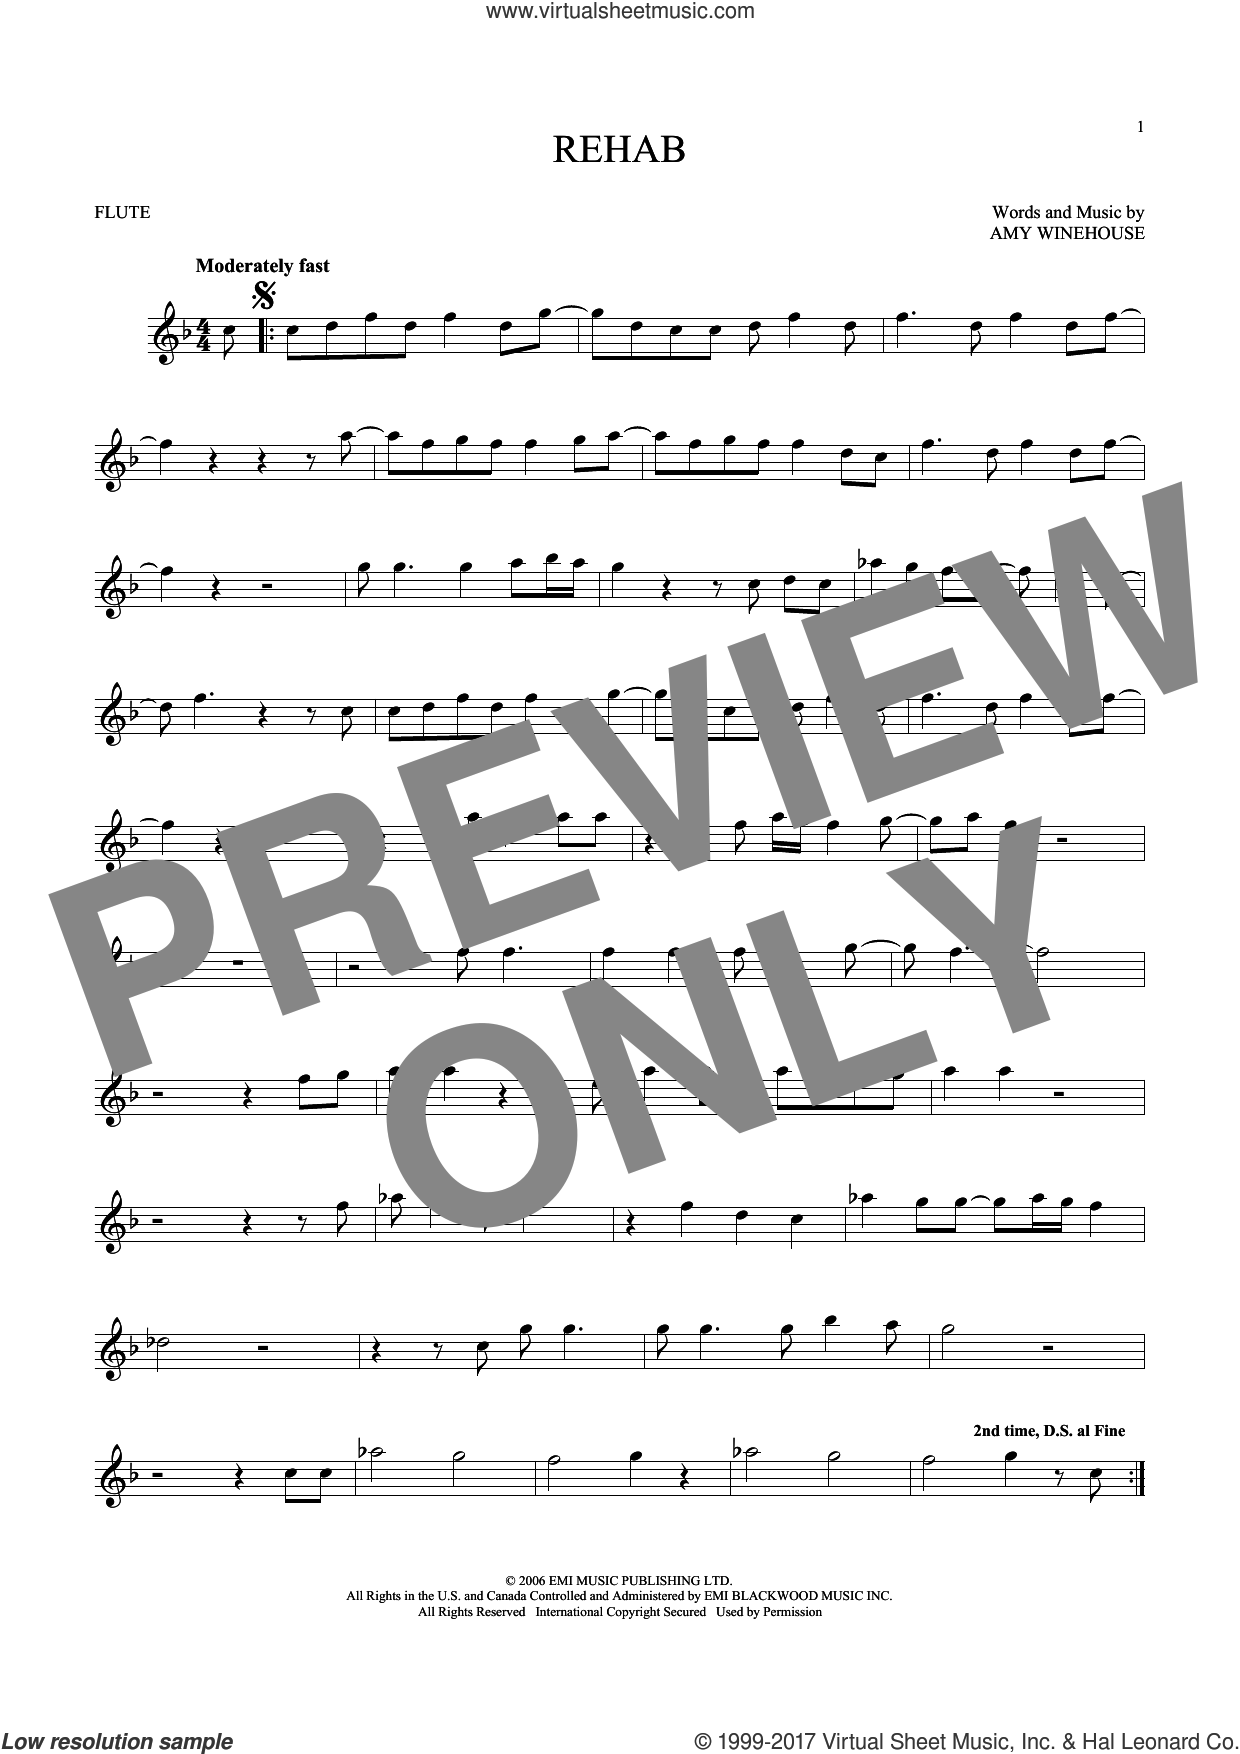 Rehab sheet music for flute solo by Amy Winehouse, intermediate skill level